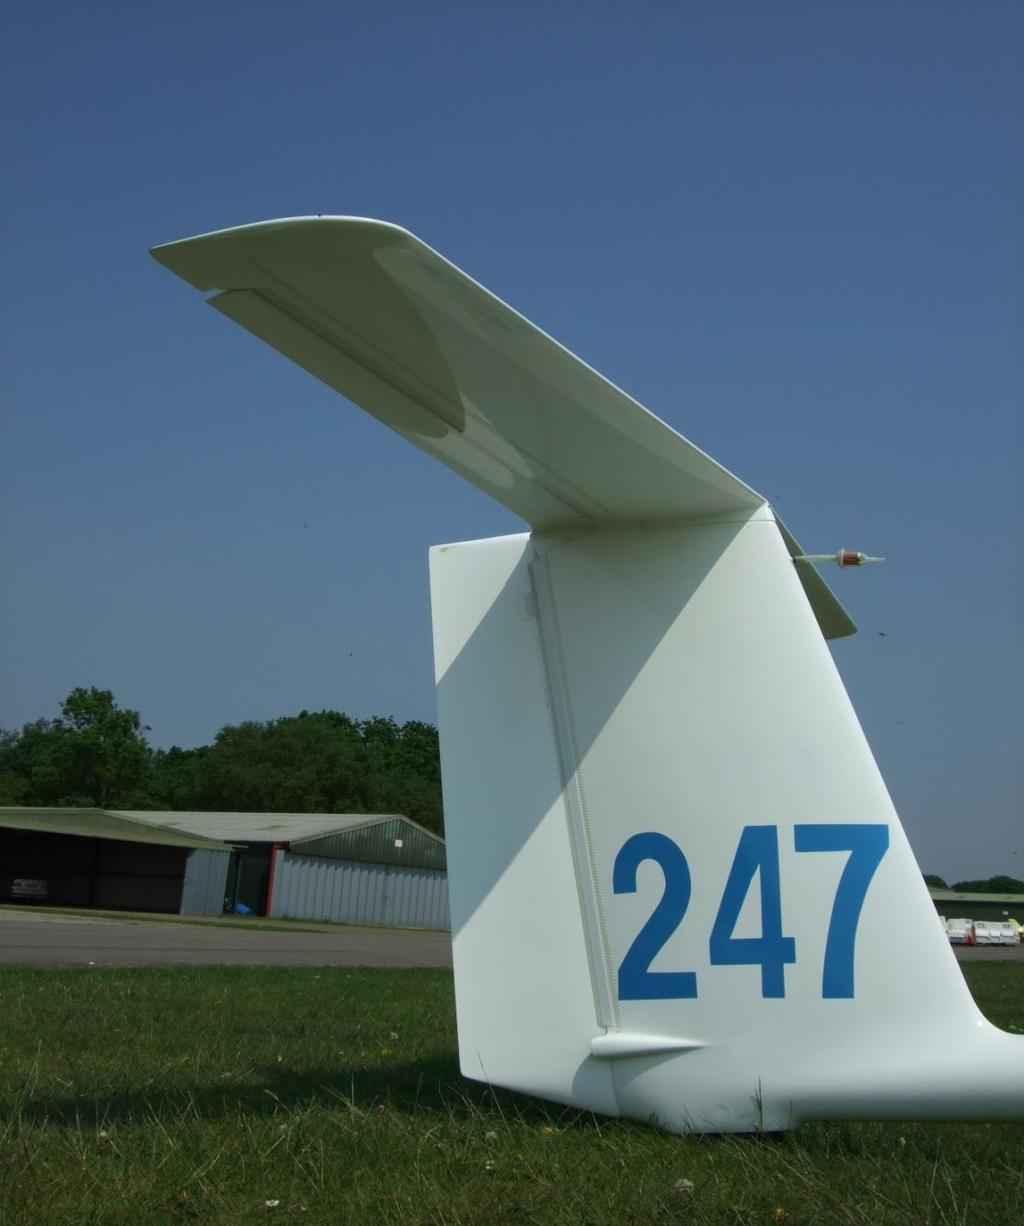 Tailplane to fin junction design (1) Narrow chord